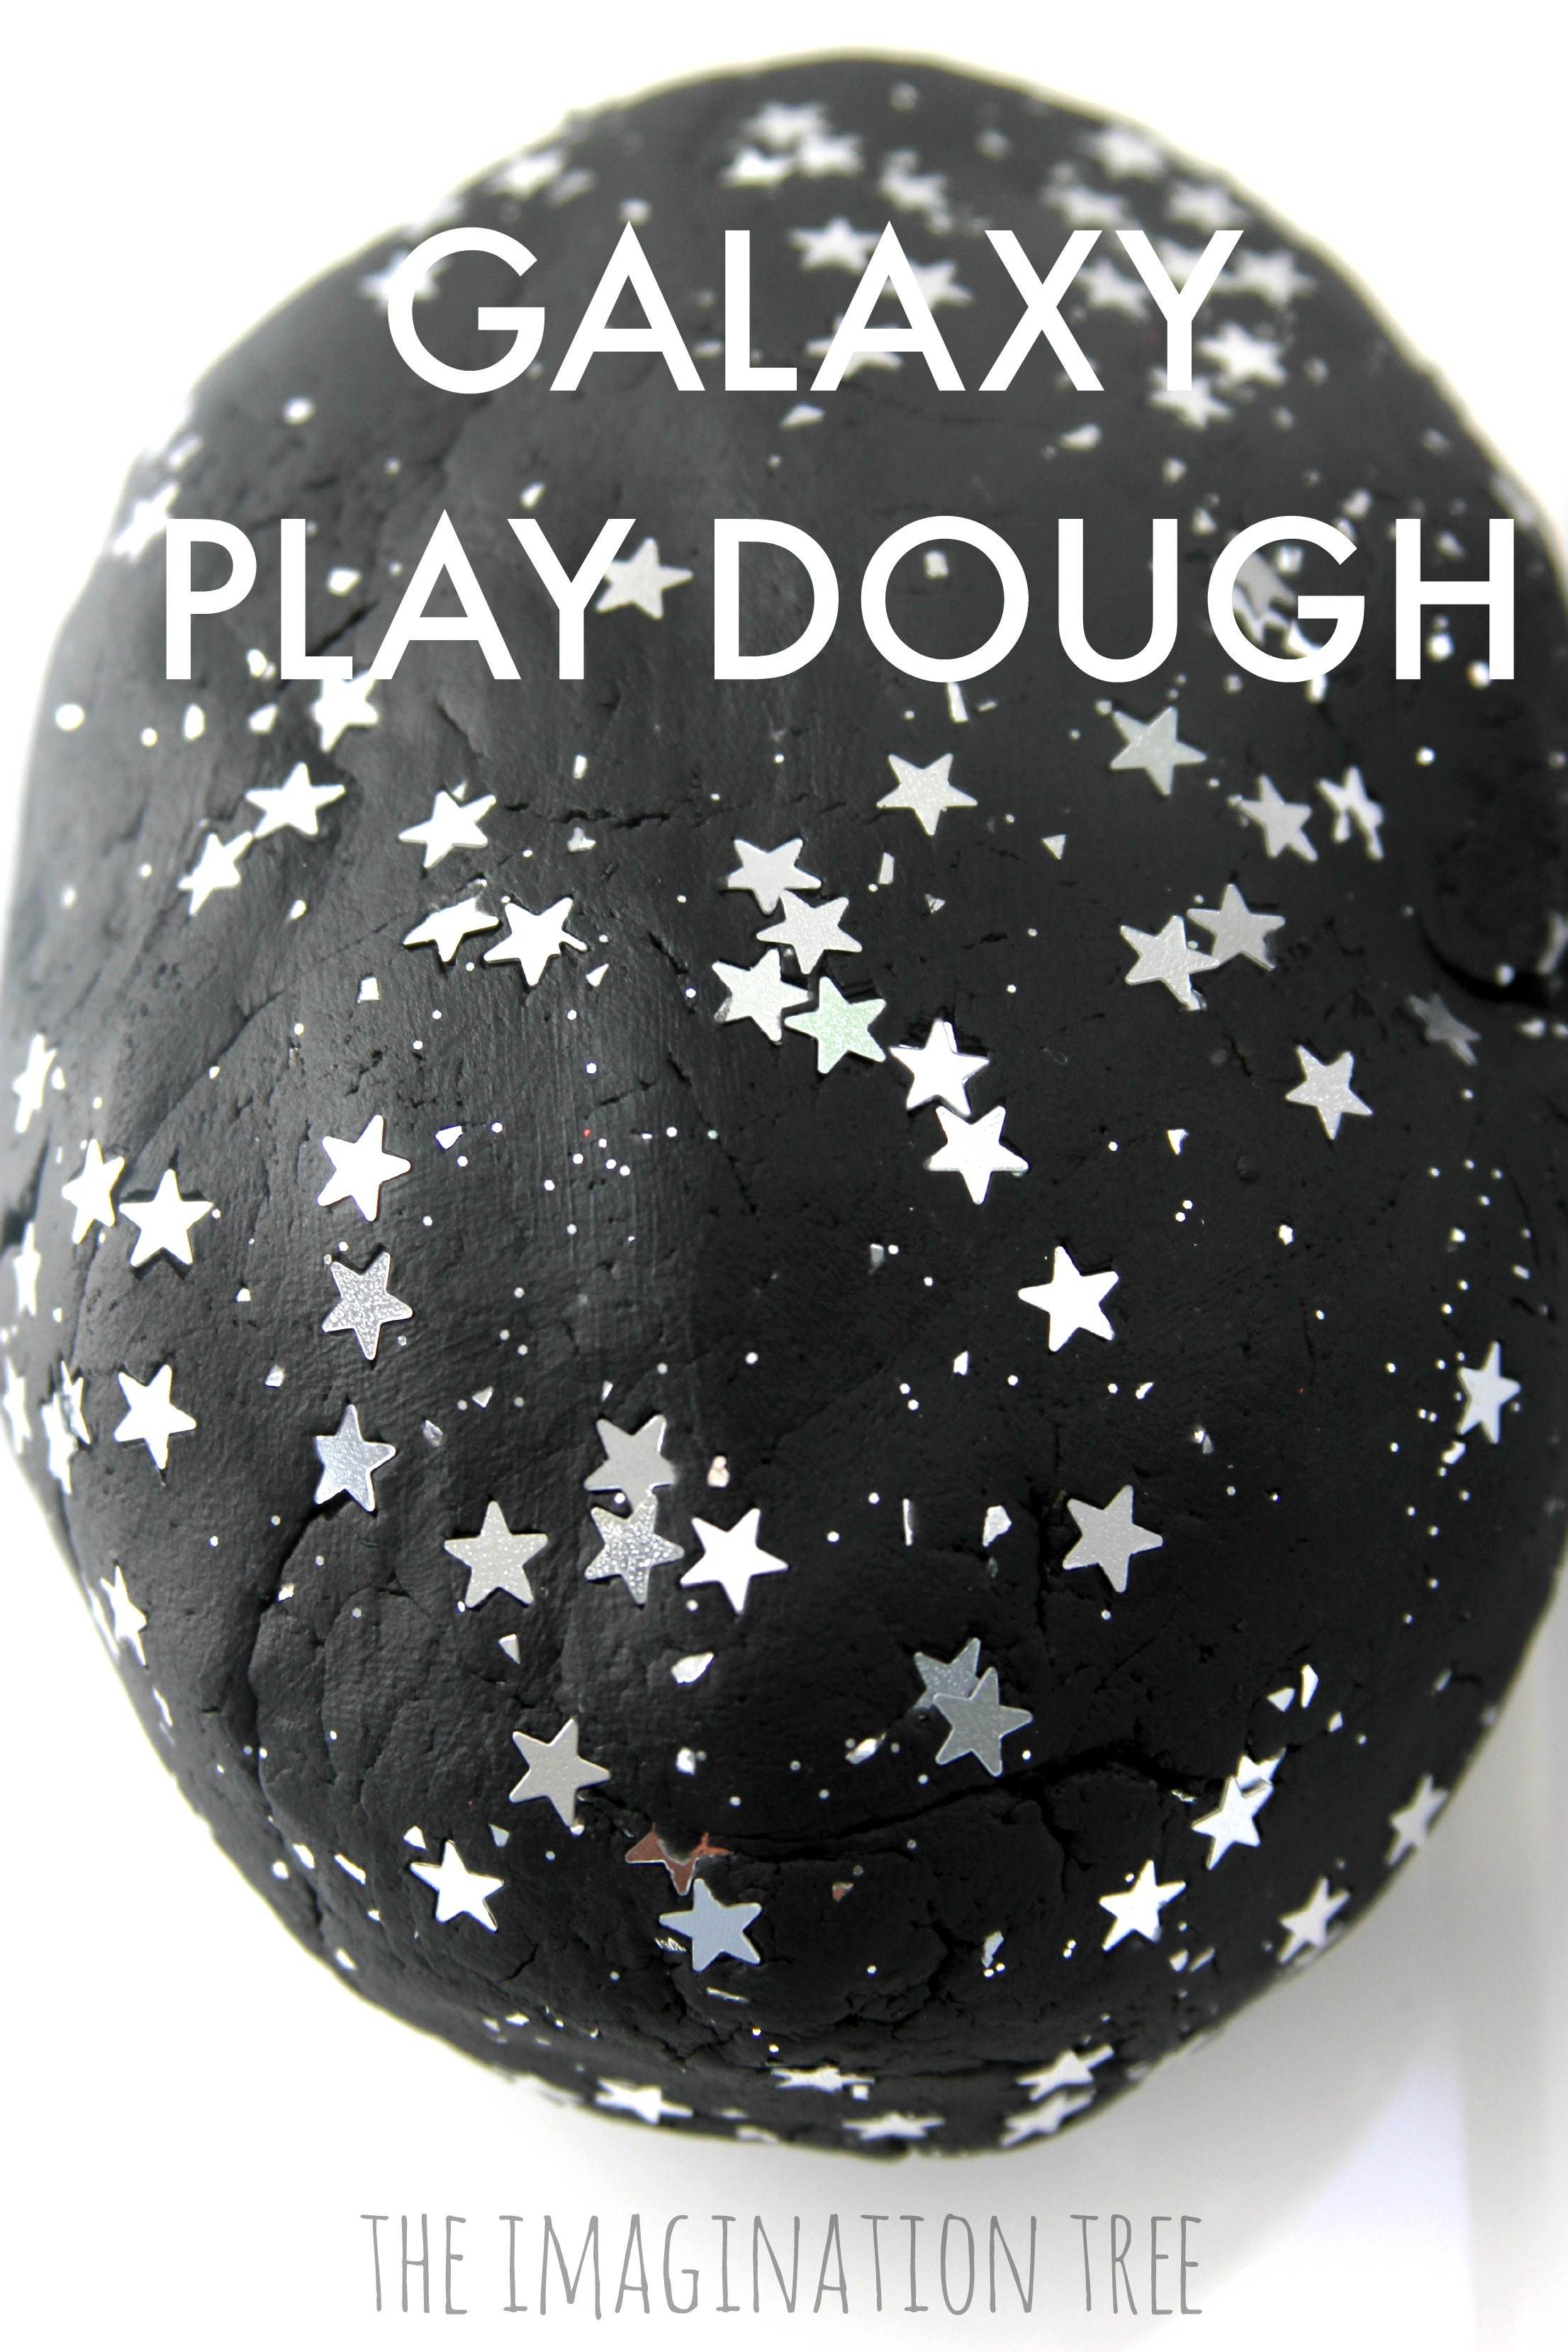 Galaxy Play Dough And Space Small World The Imagination Tree